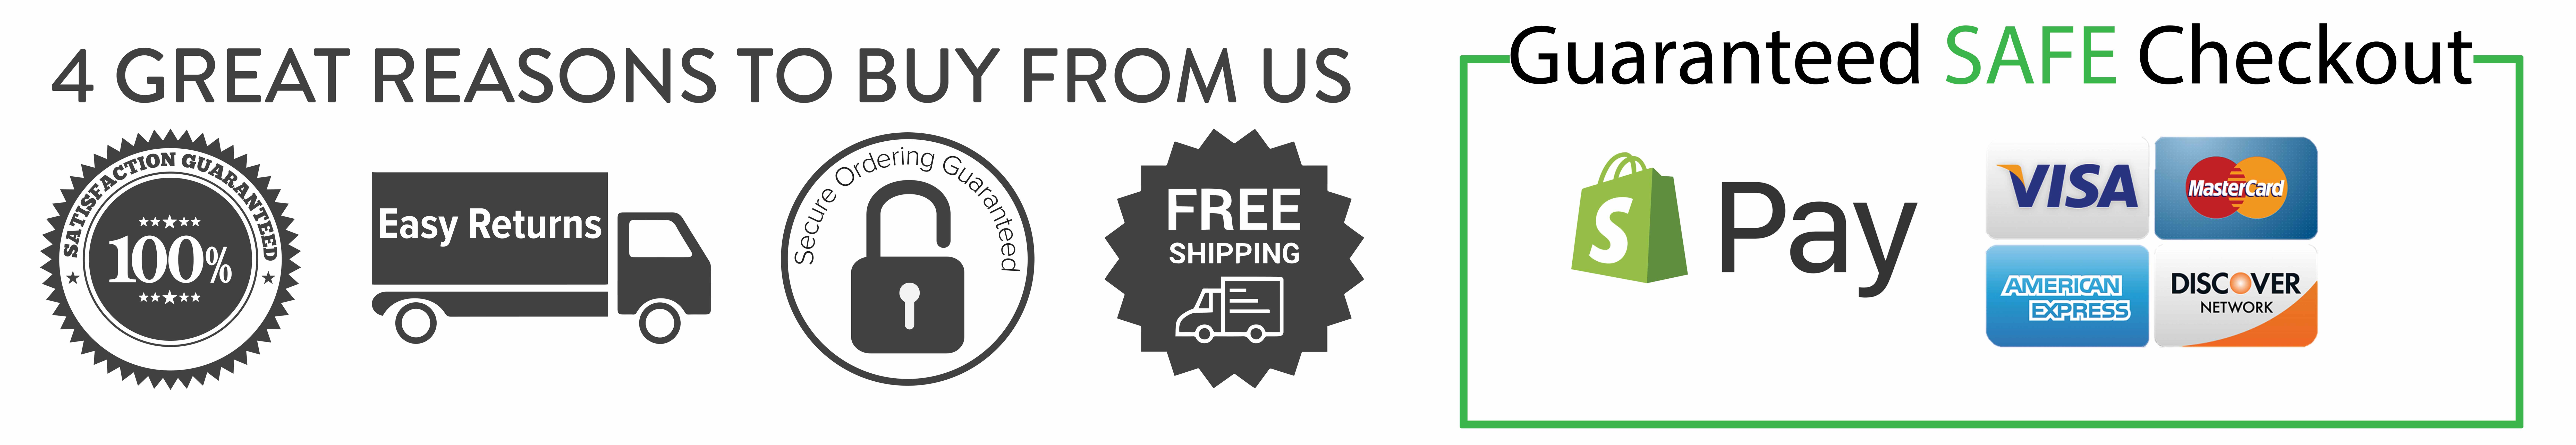 100% satisfaction guaranteed, easy returns, secure ordering guaranteed, free shipping. Guaranteed safe checkout supporting shopify pay, visa, MasterCard, American Express, Discover